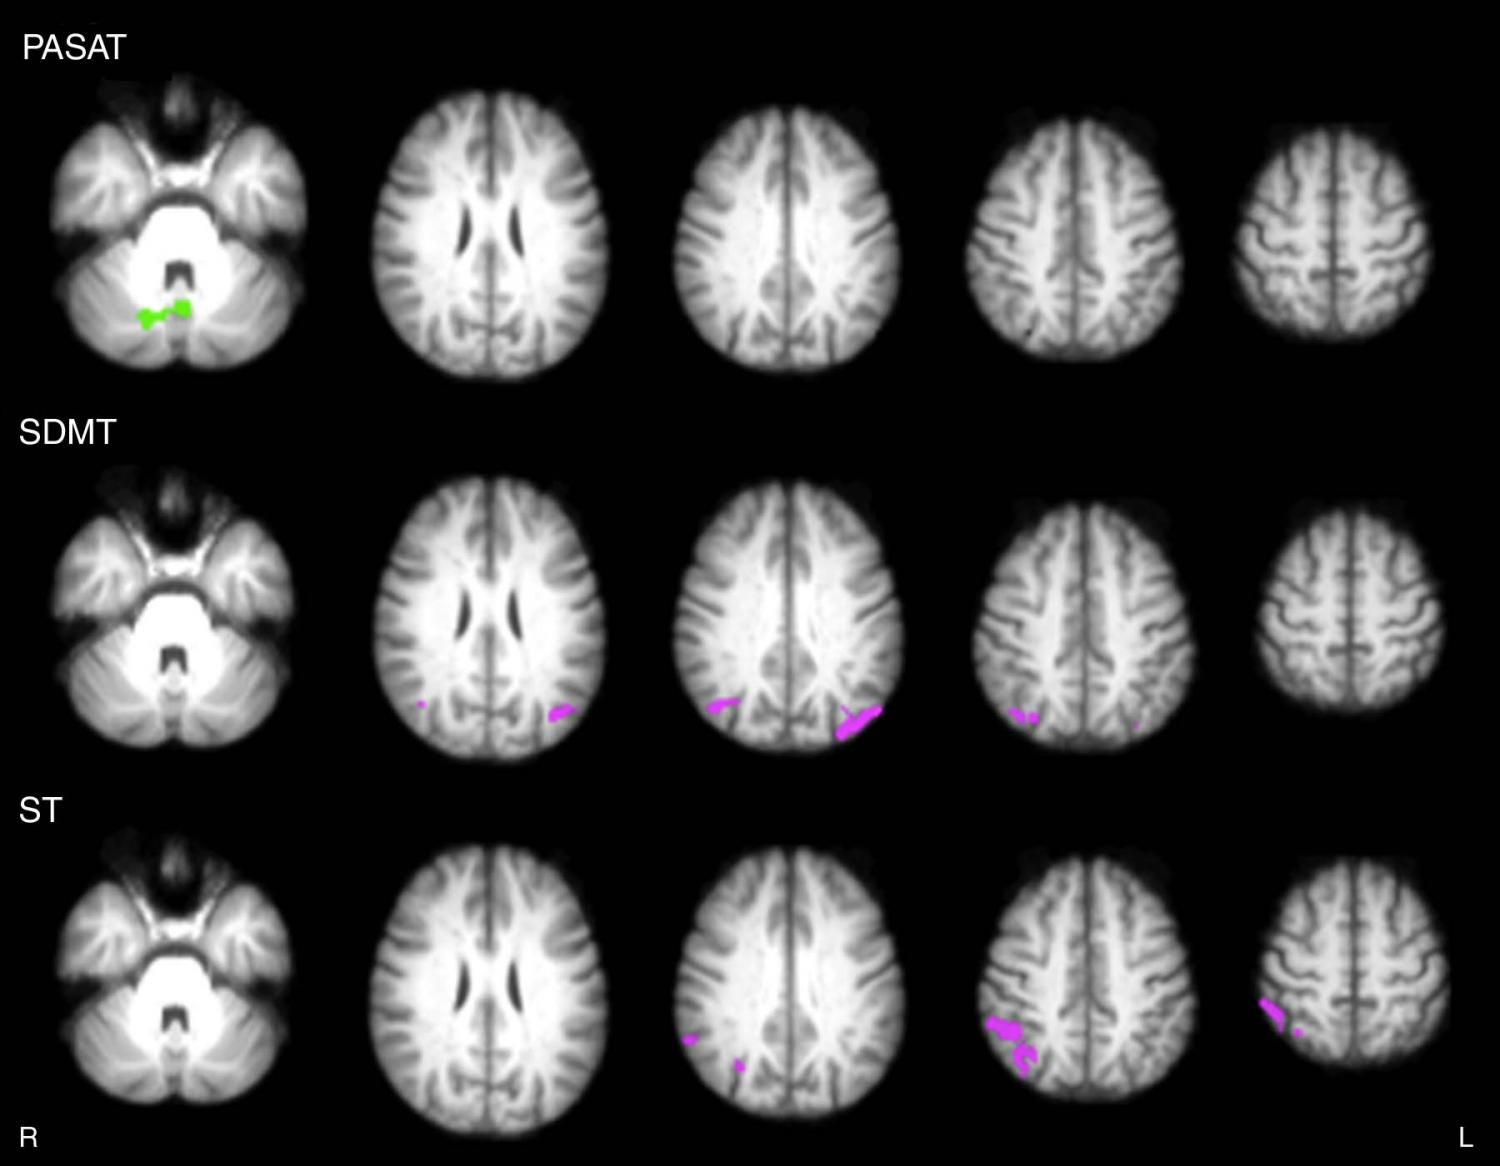 Games improve brain connections in multiple sclerosis patients video games improve brain connections in multiple sclerosis patients ccuart Images